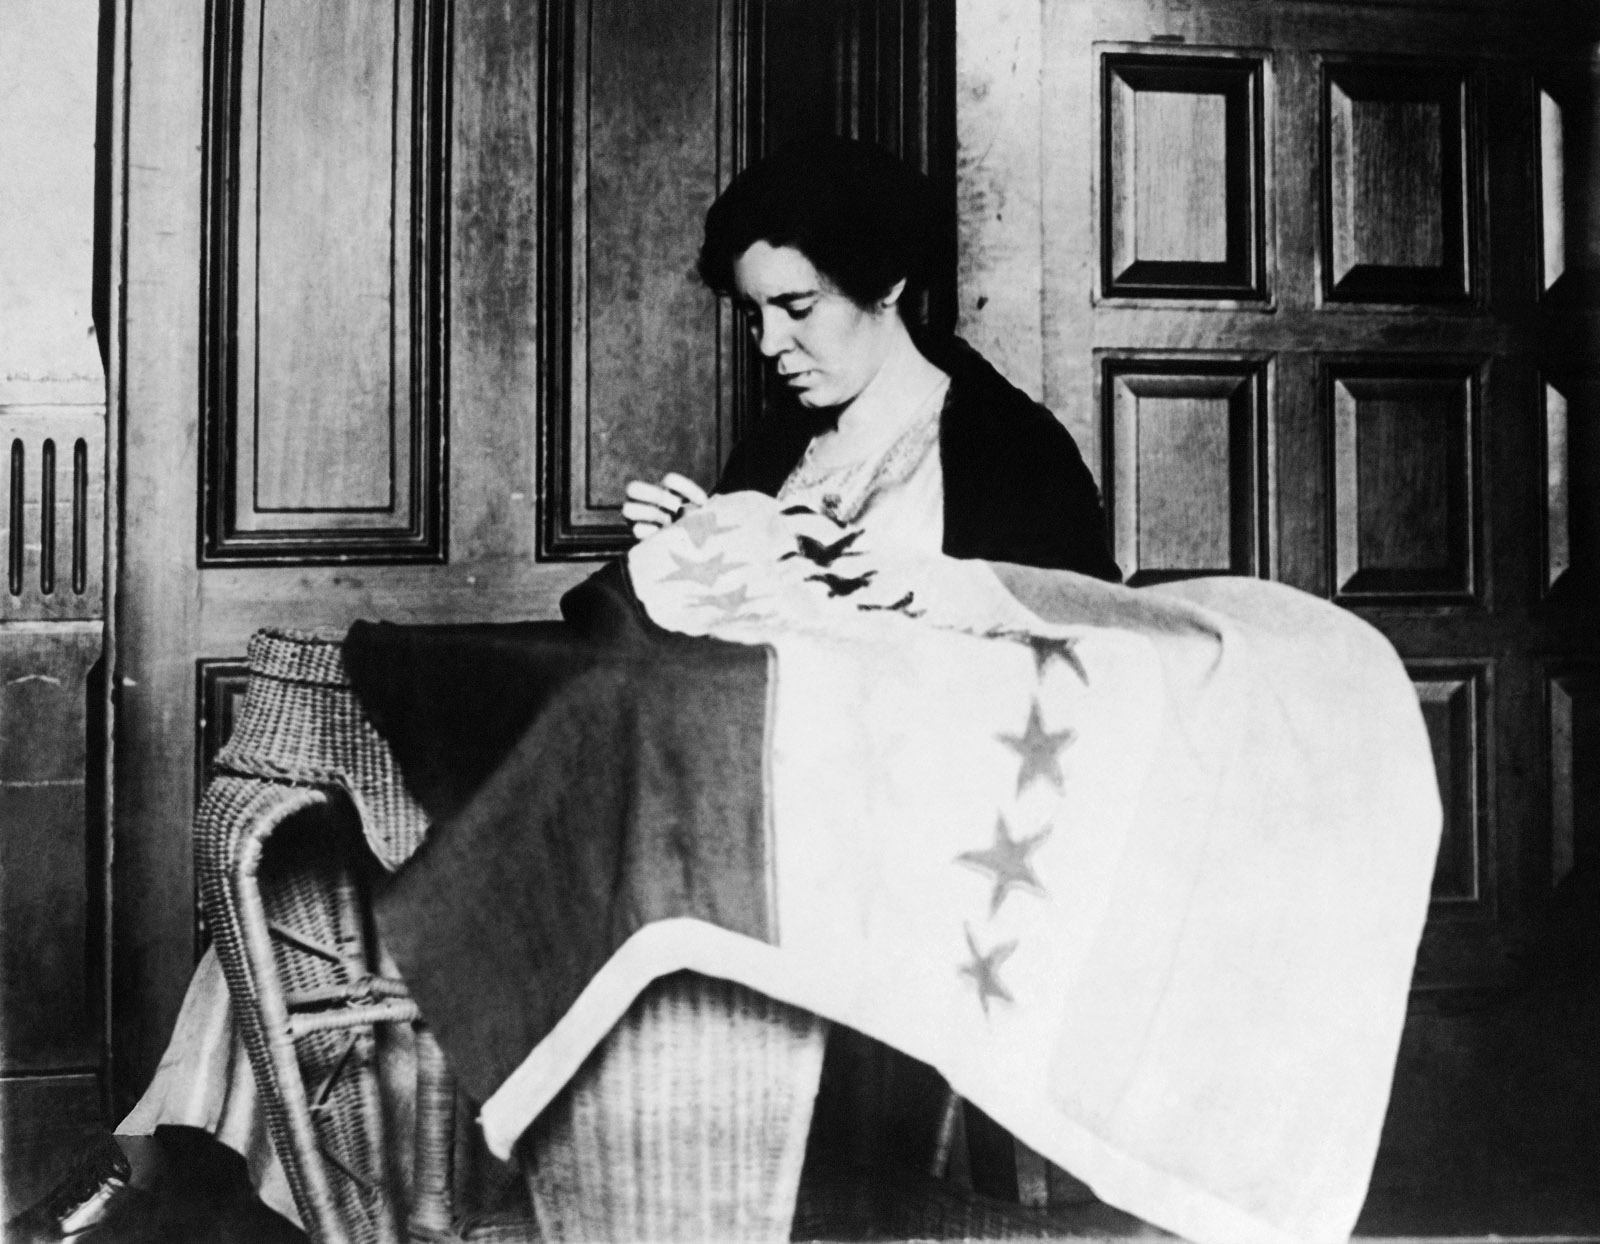 Alice Paul, Chairman of the Nation Women's Party, takes up needle & thread to put the last stitch in the suffrage banner which now has 36 stars representing the 36 states which ratified the suffrage amendment. circa 1932. (AP Photo)